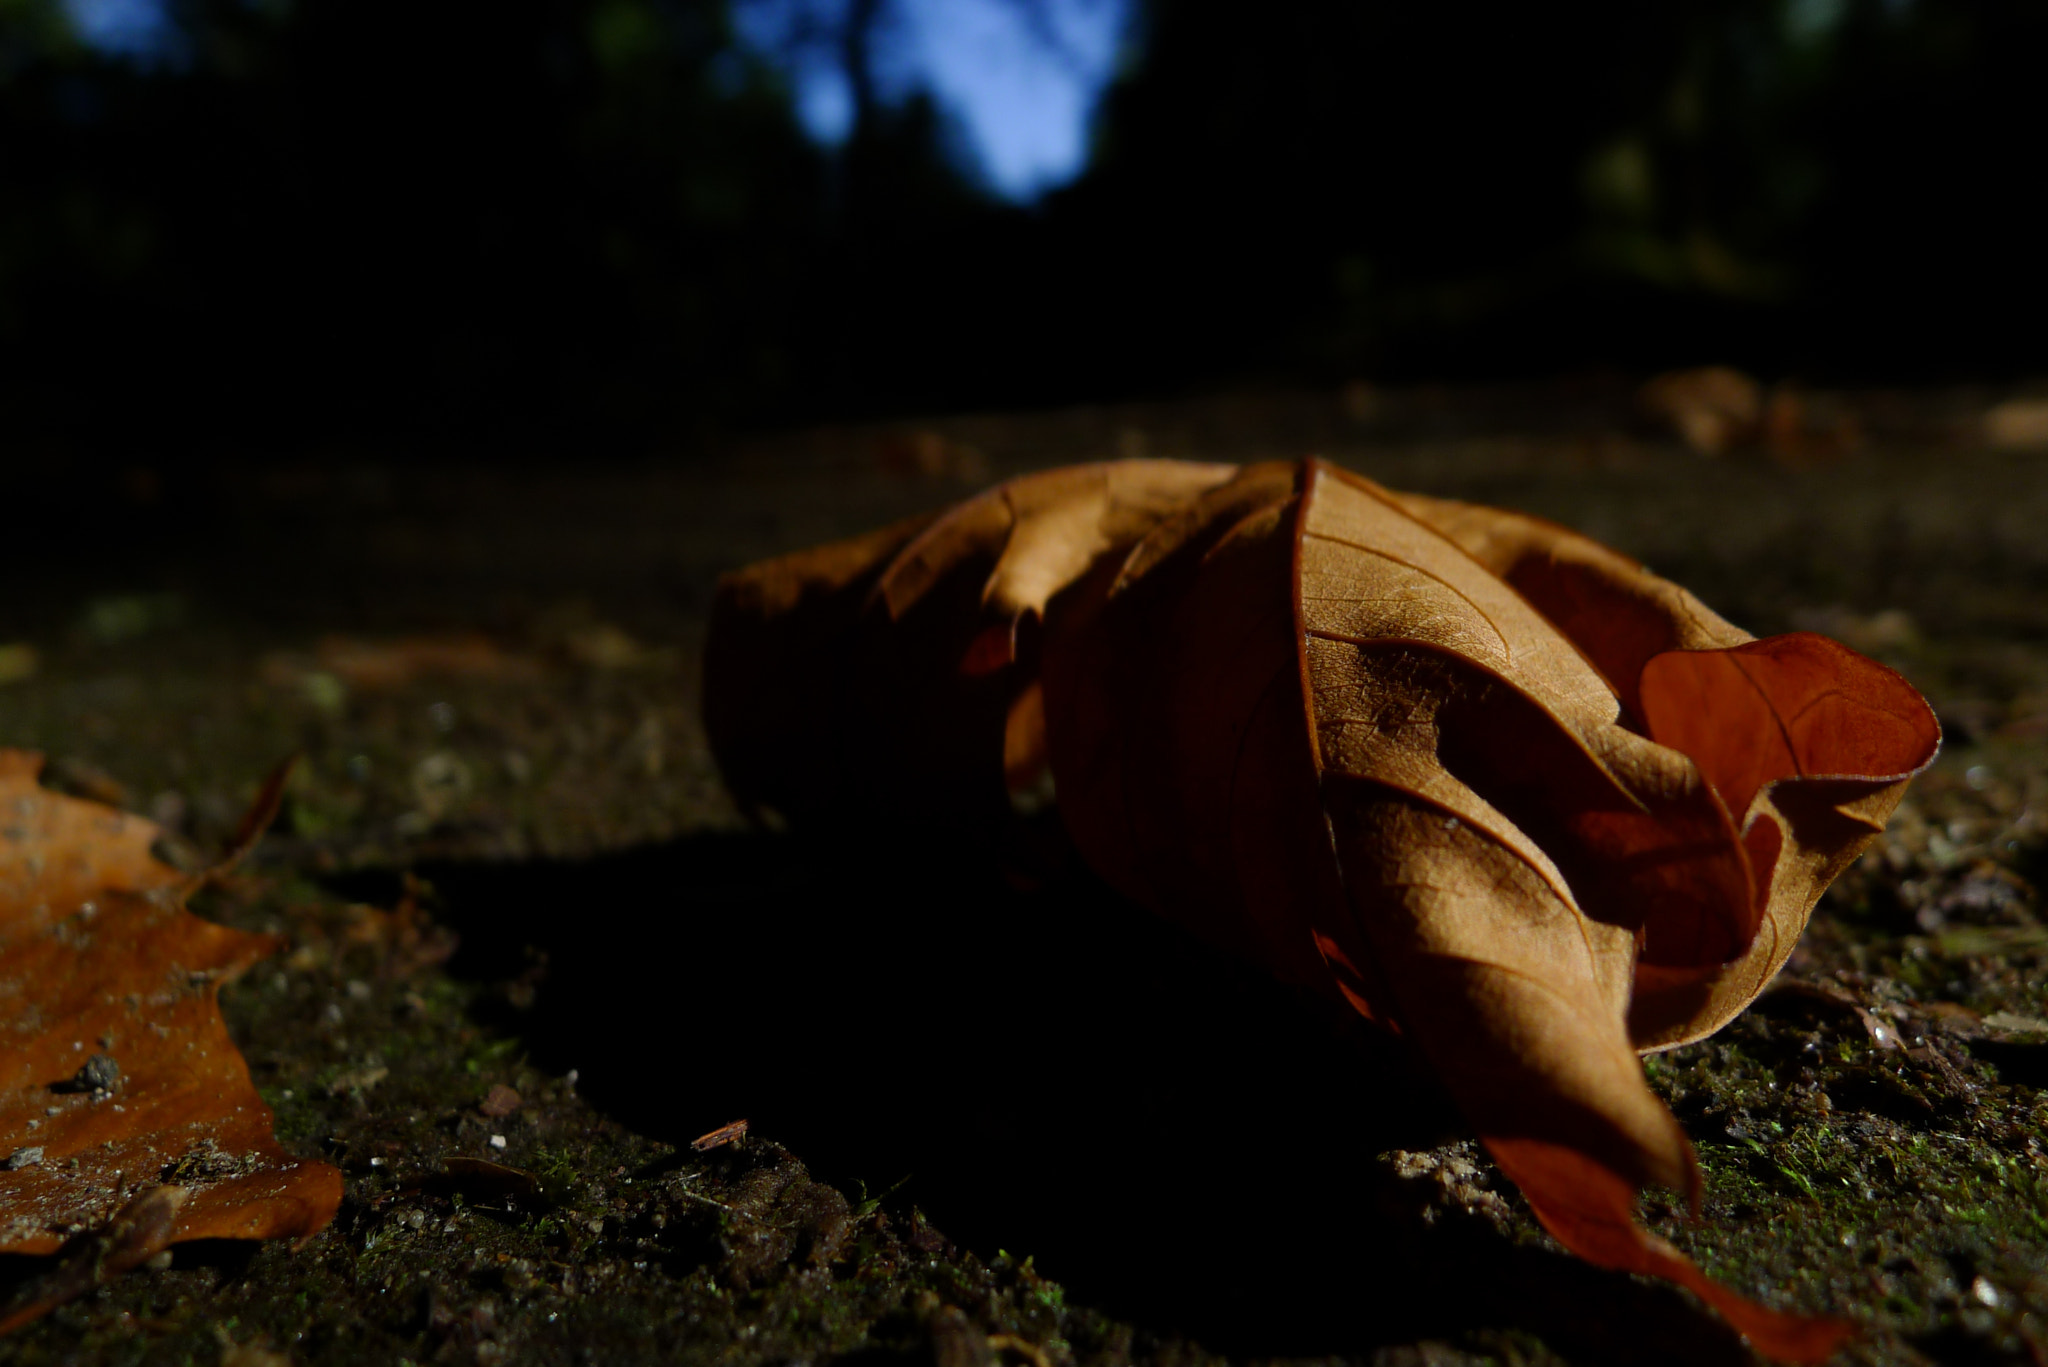 Photograph Autumn_is_comming by André Medeiros on 500px